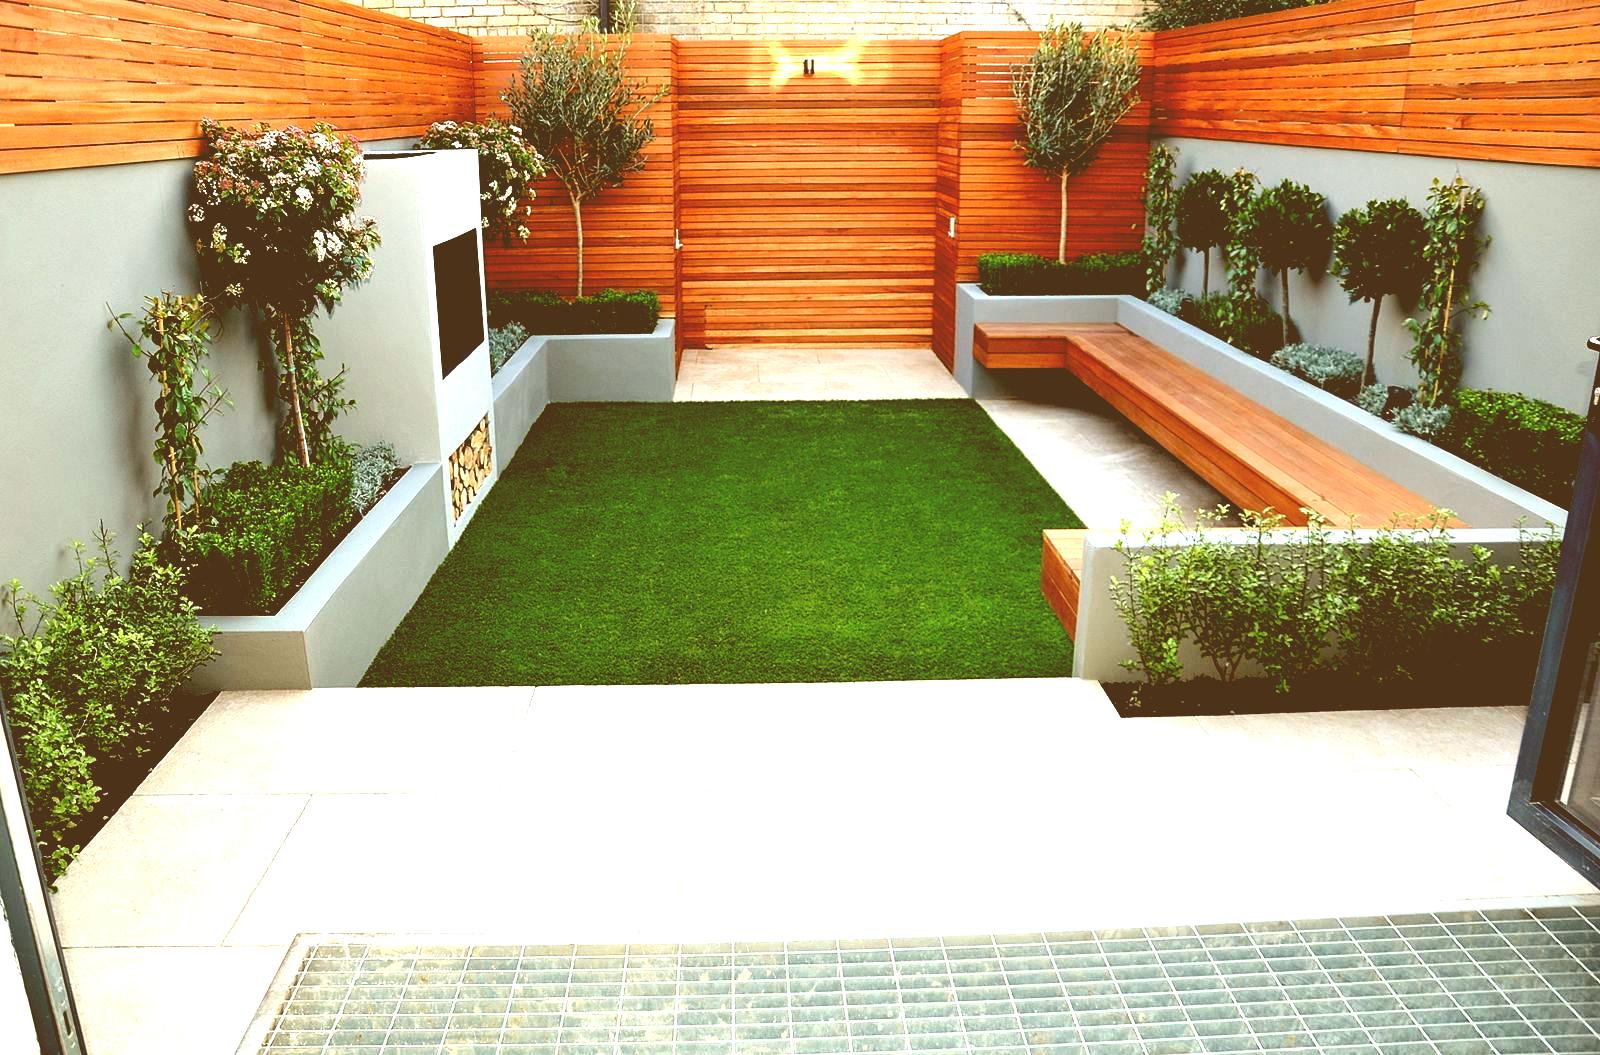 Epic Gallery Of Good Front Garden Design Ideas Low Maintenance Uk For With Regard To Beautiful Small Garden Design Ideas Low Maintenance Ideas House Generation